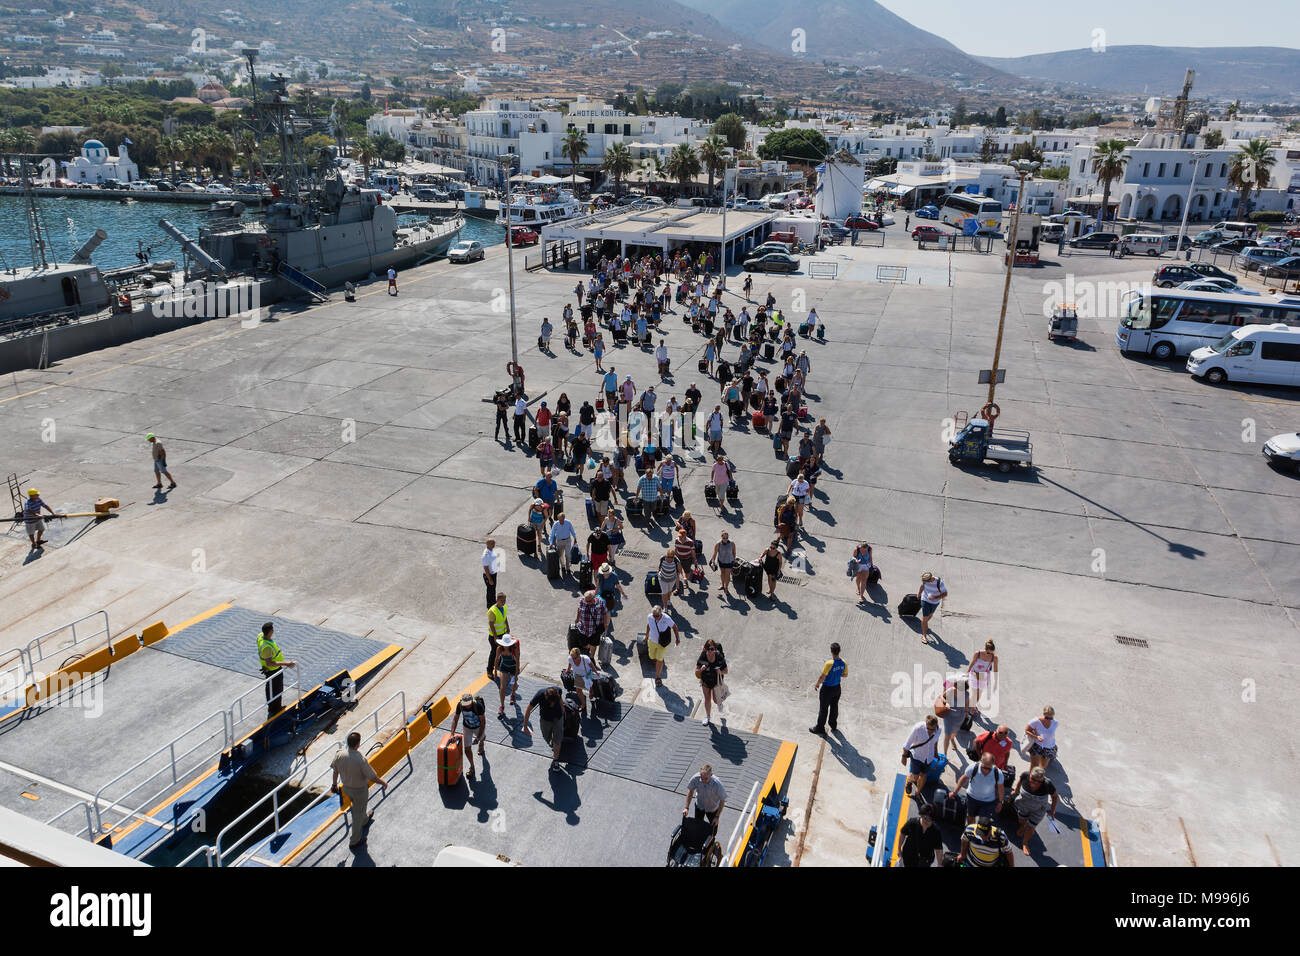 PAROS, GREECE - SEPTEMBER 17, 2016: Passengers and cars embark on a ship at the port of Paros in Greece. Paros is a beautiful Cycladic island visited  - Stock Image